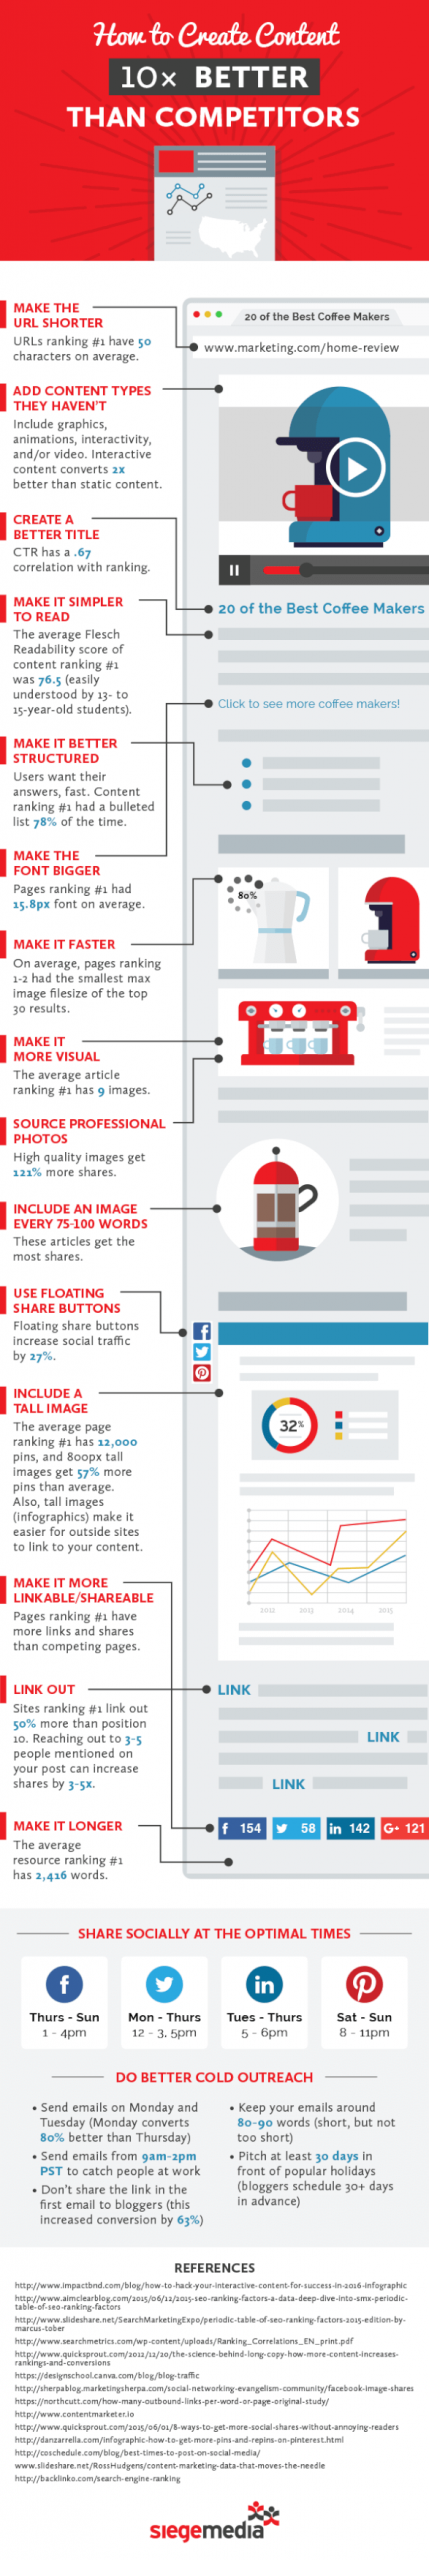 Infographic – How to Create Content 10x Better Than Competitors